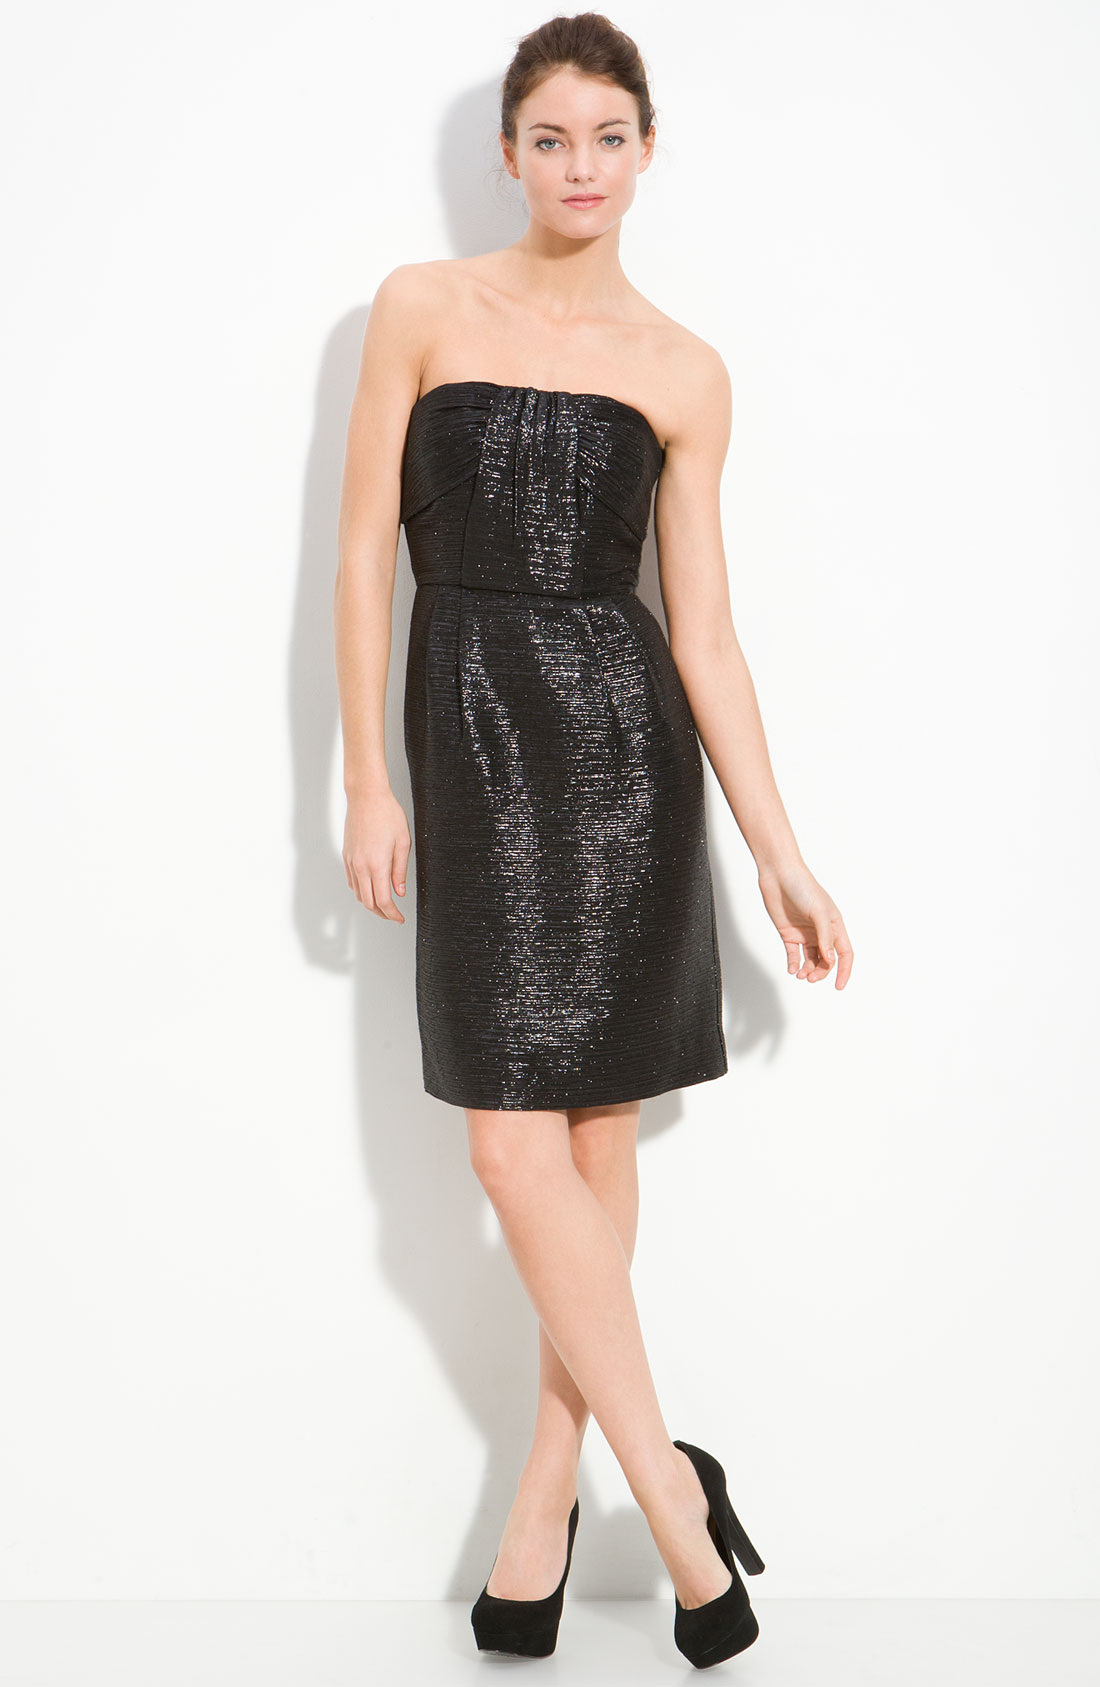 Browse more items by designer store or trend